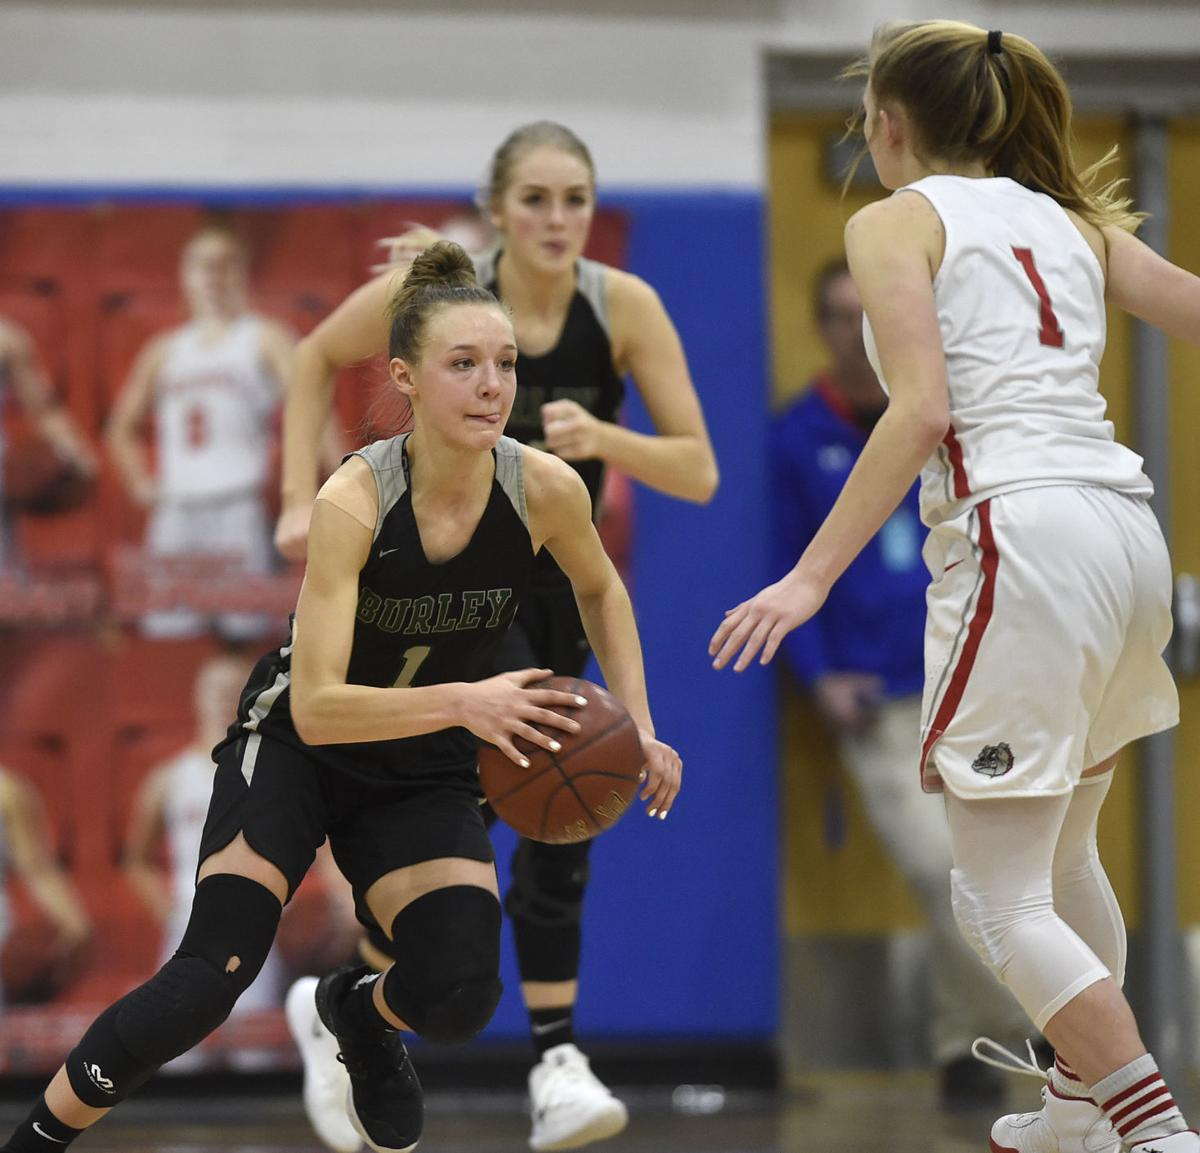 Girls State Basketball - Burley vs. Sandpoint